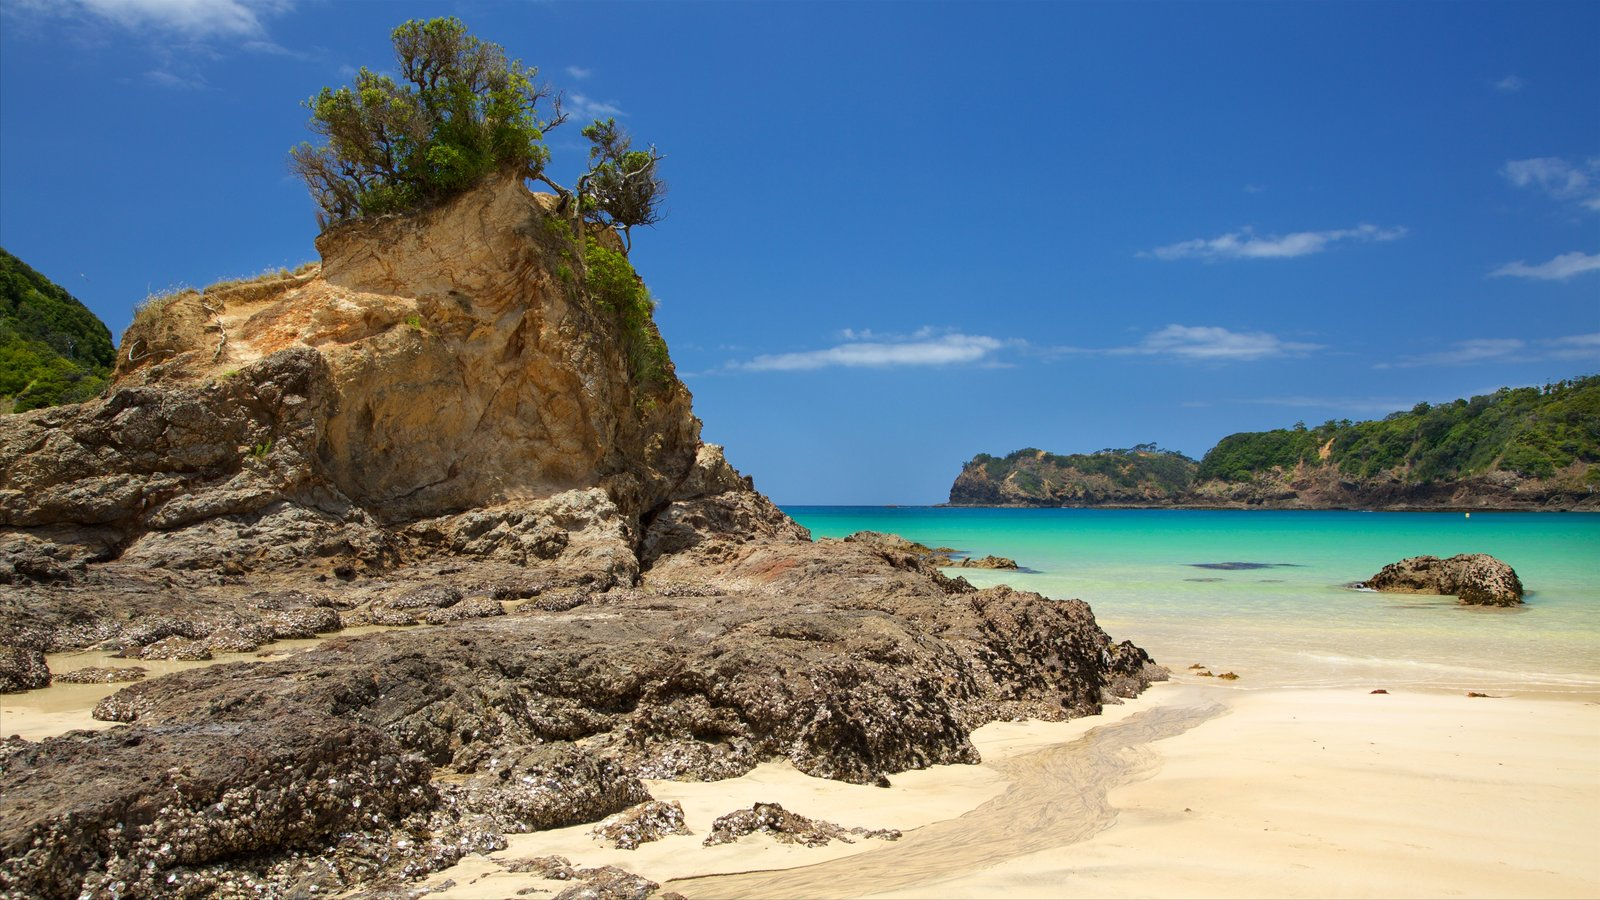 Tutukaka which includes a sandy beach, rocky coastline and a bay or harbor